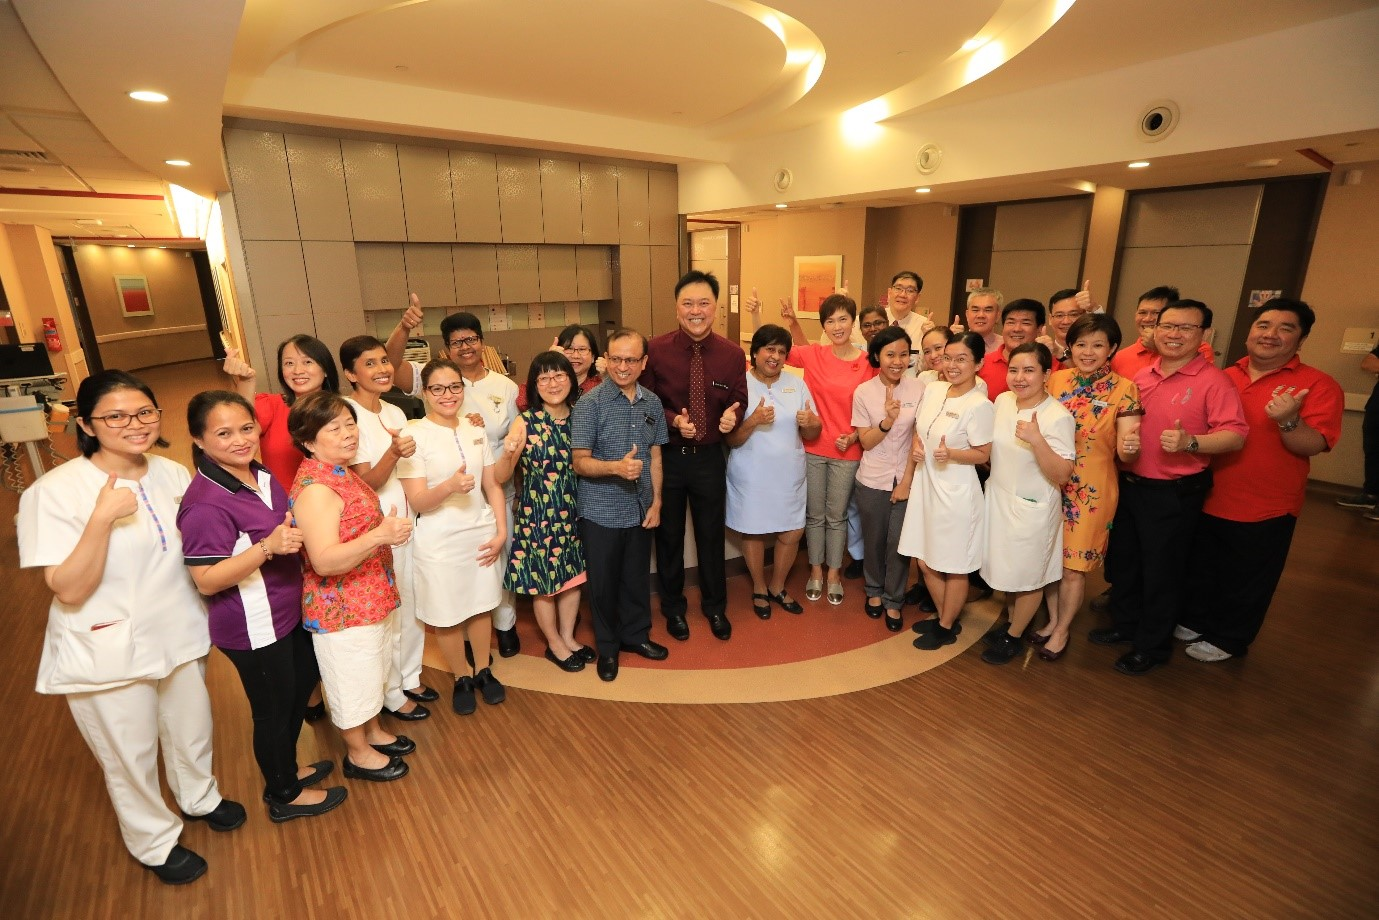 Minister Josephine Teo, senior management of KKH and members from Healthcare Services Employees' Union taking a group photo with the staff from Ward 82 maternity ward.